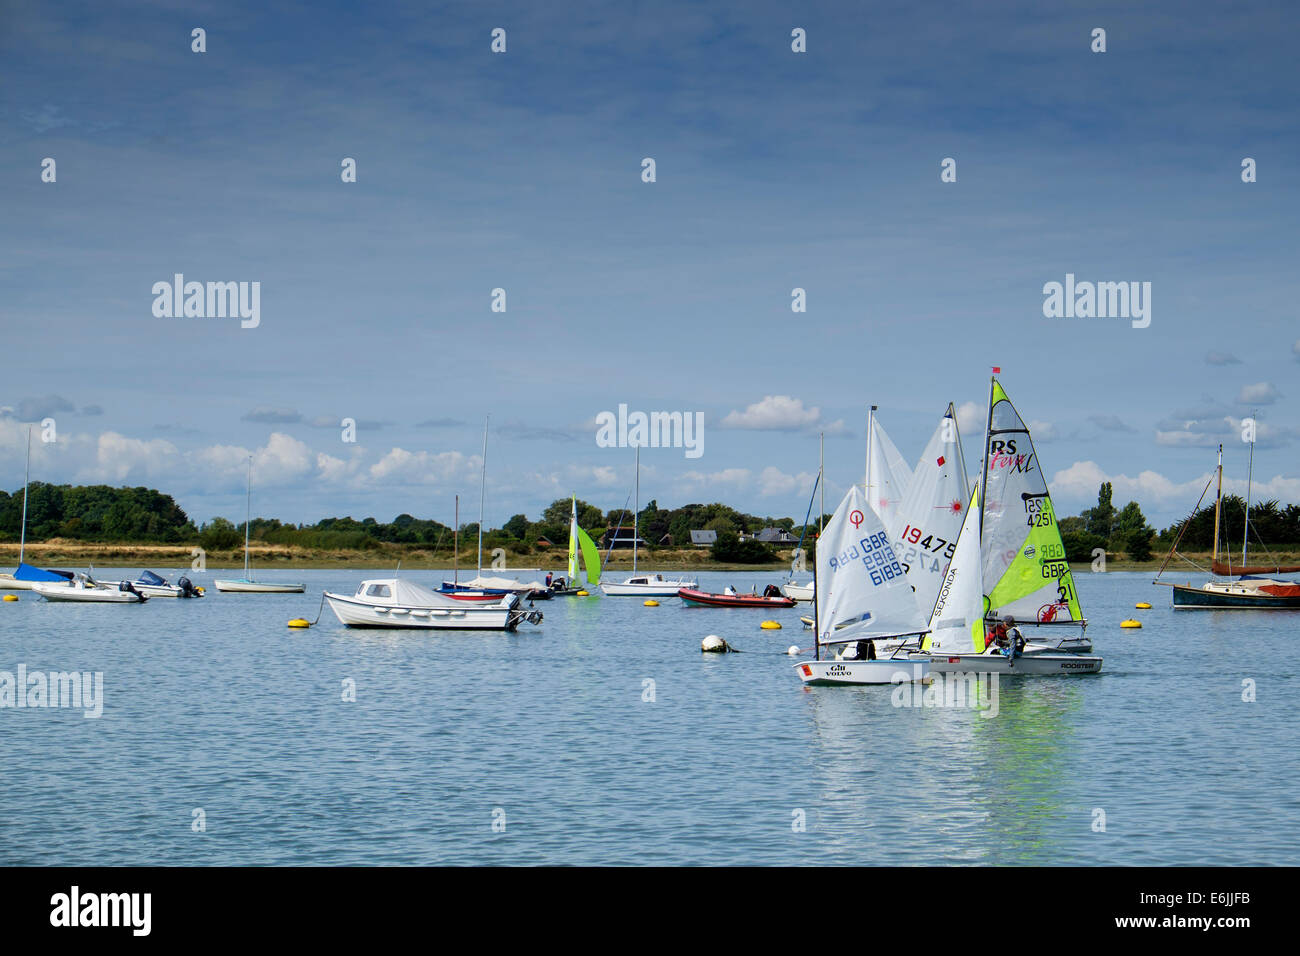 people enjoying their leisure time by sailing in small dinghies in the relative safety of the calm waters in chichester - Stock Image